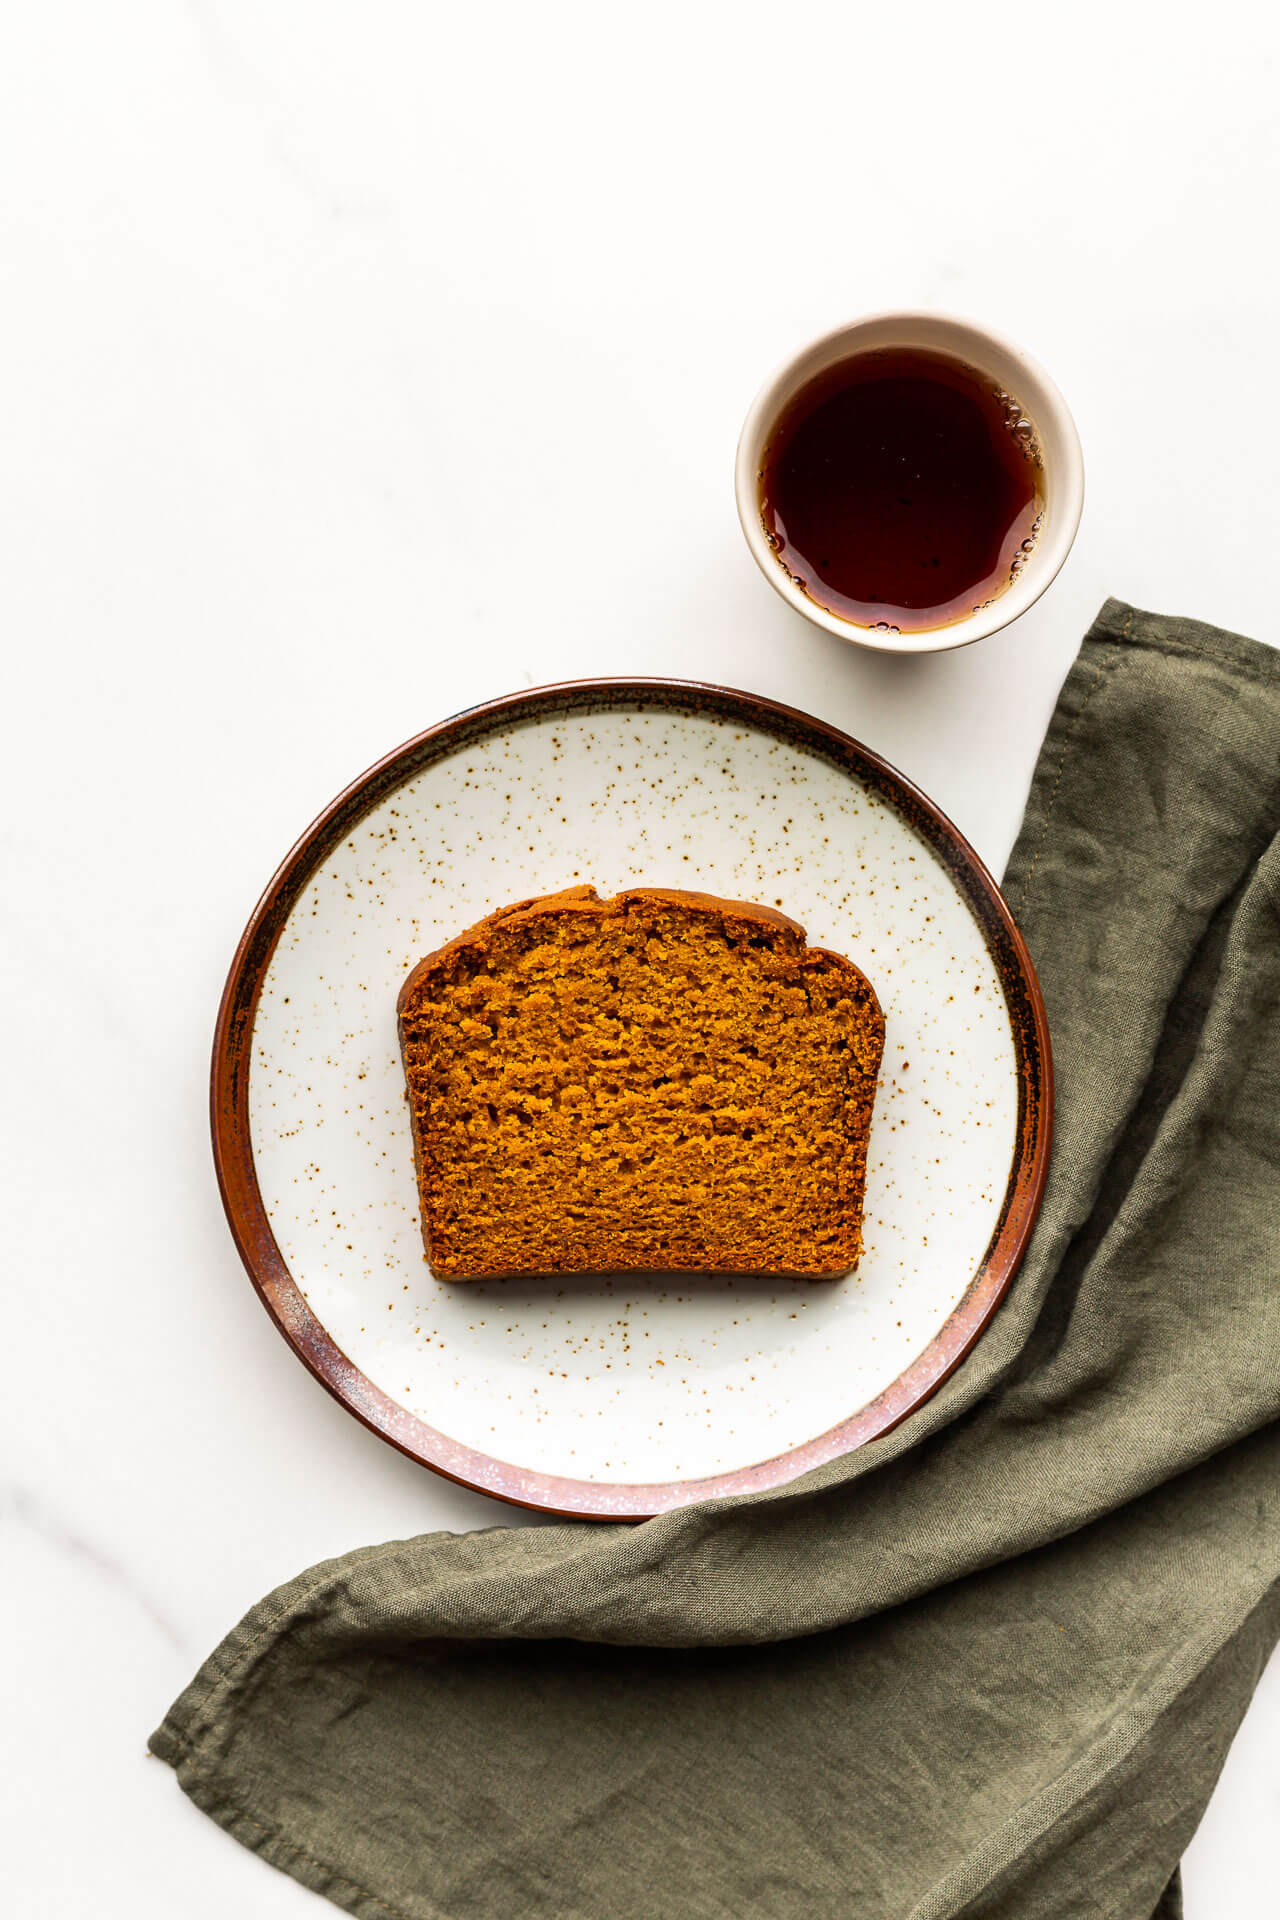 A slice of pumpkin spice loaf cake with a cup of tea and a green linen.